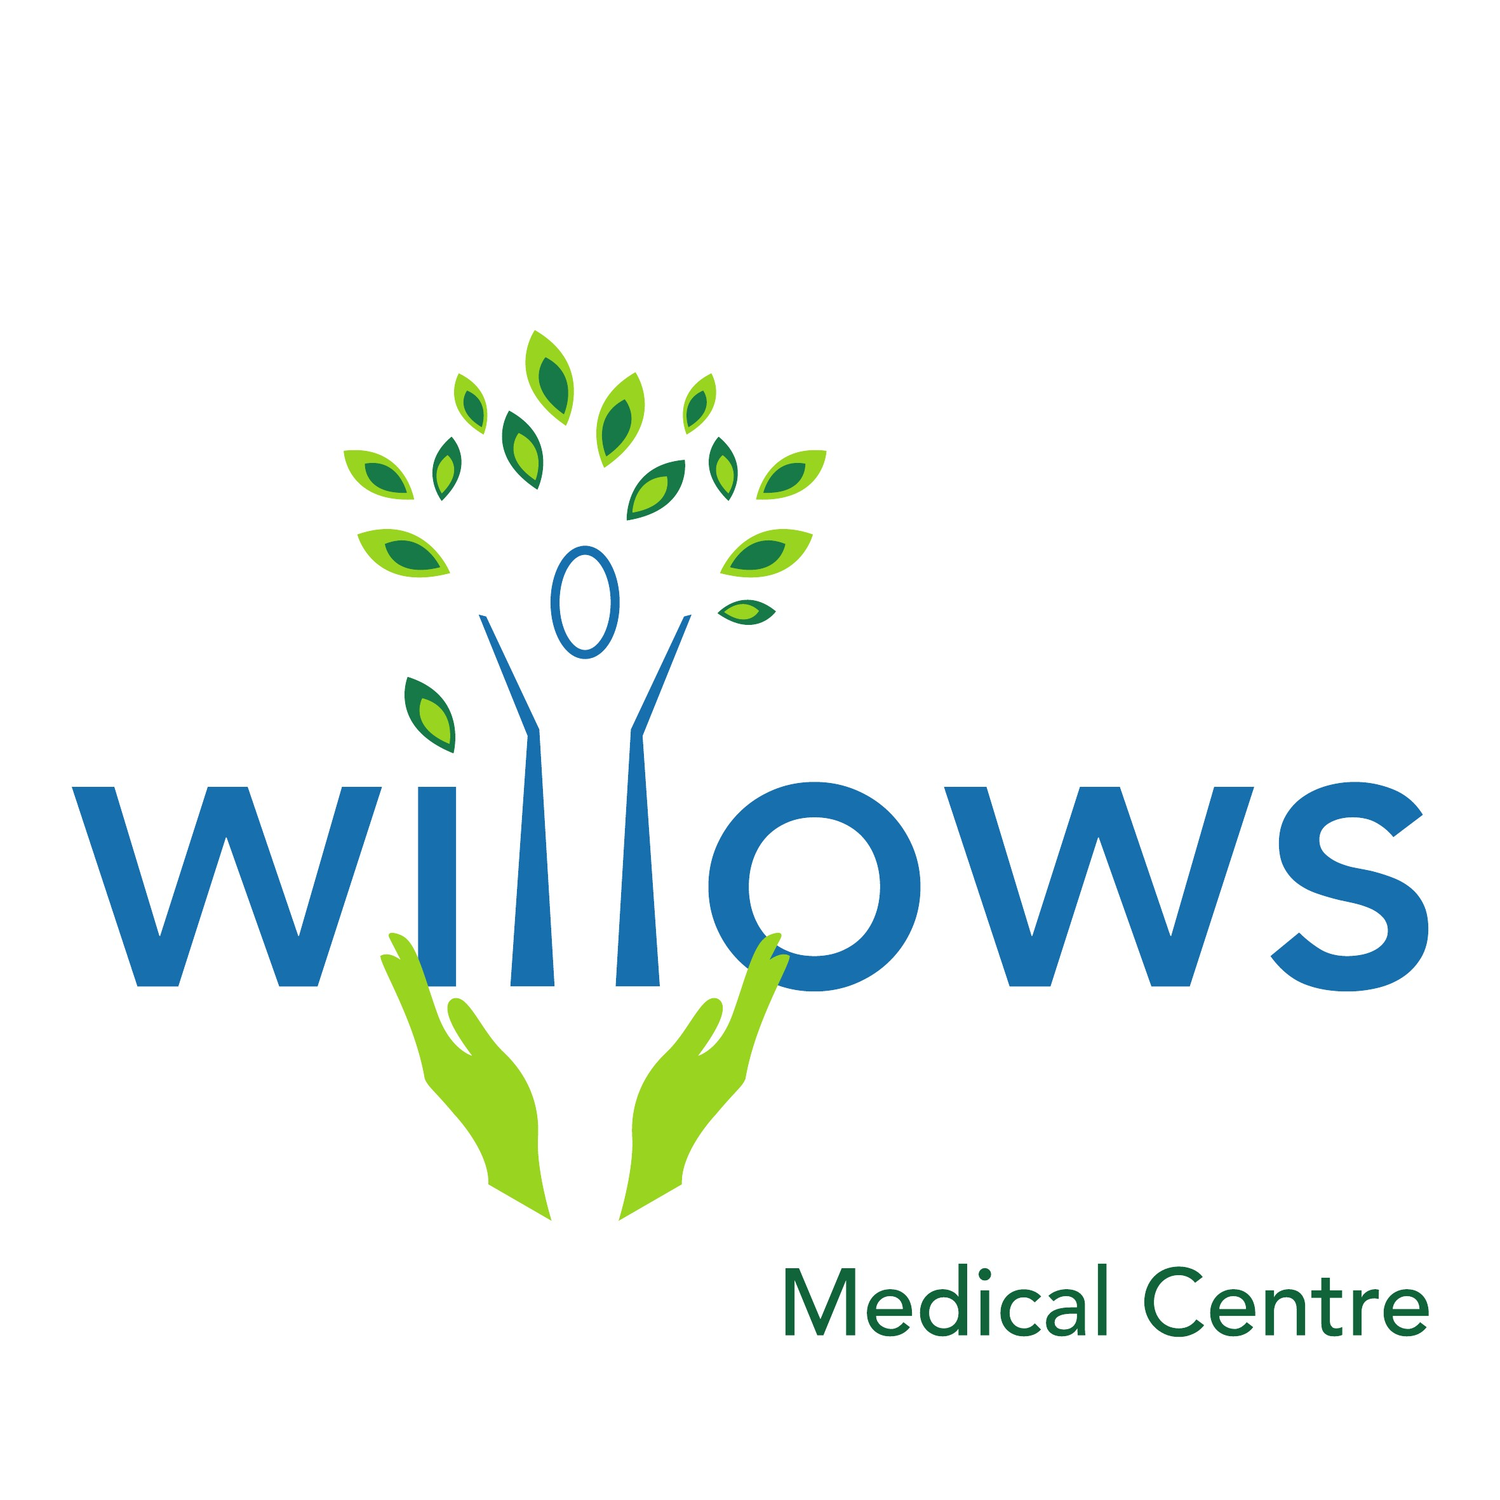 Willows Medical Centre